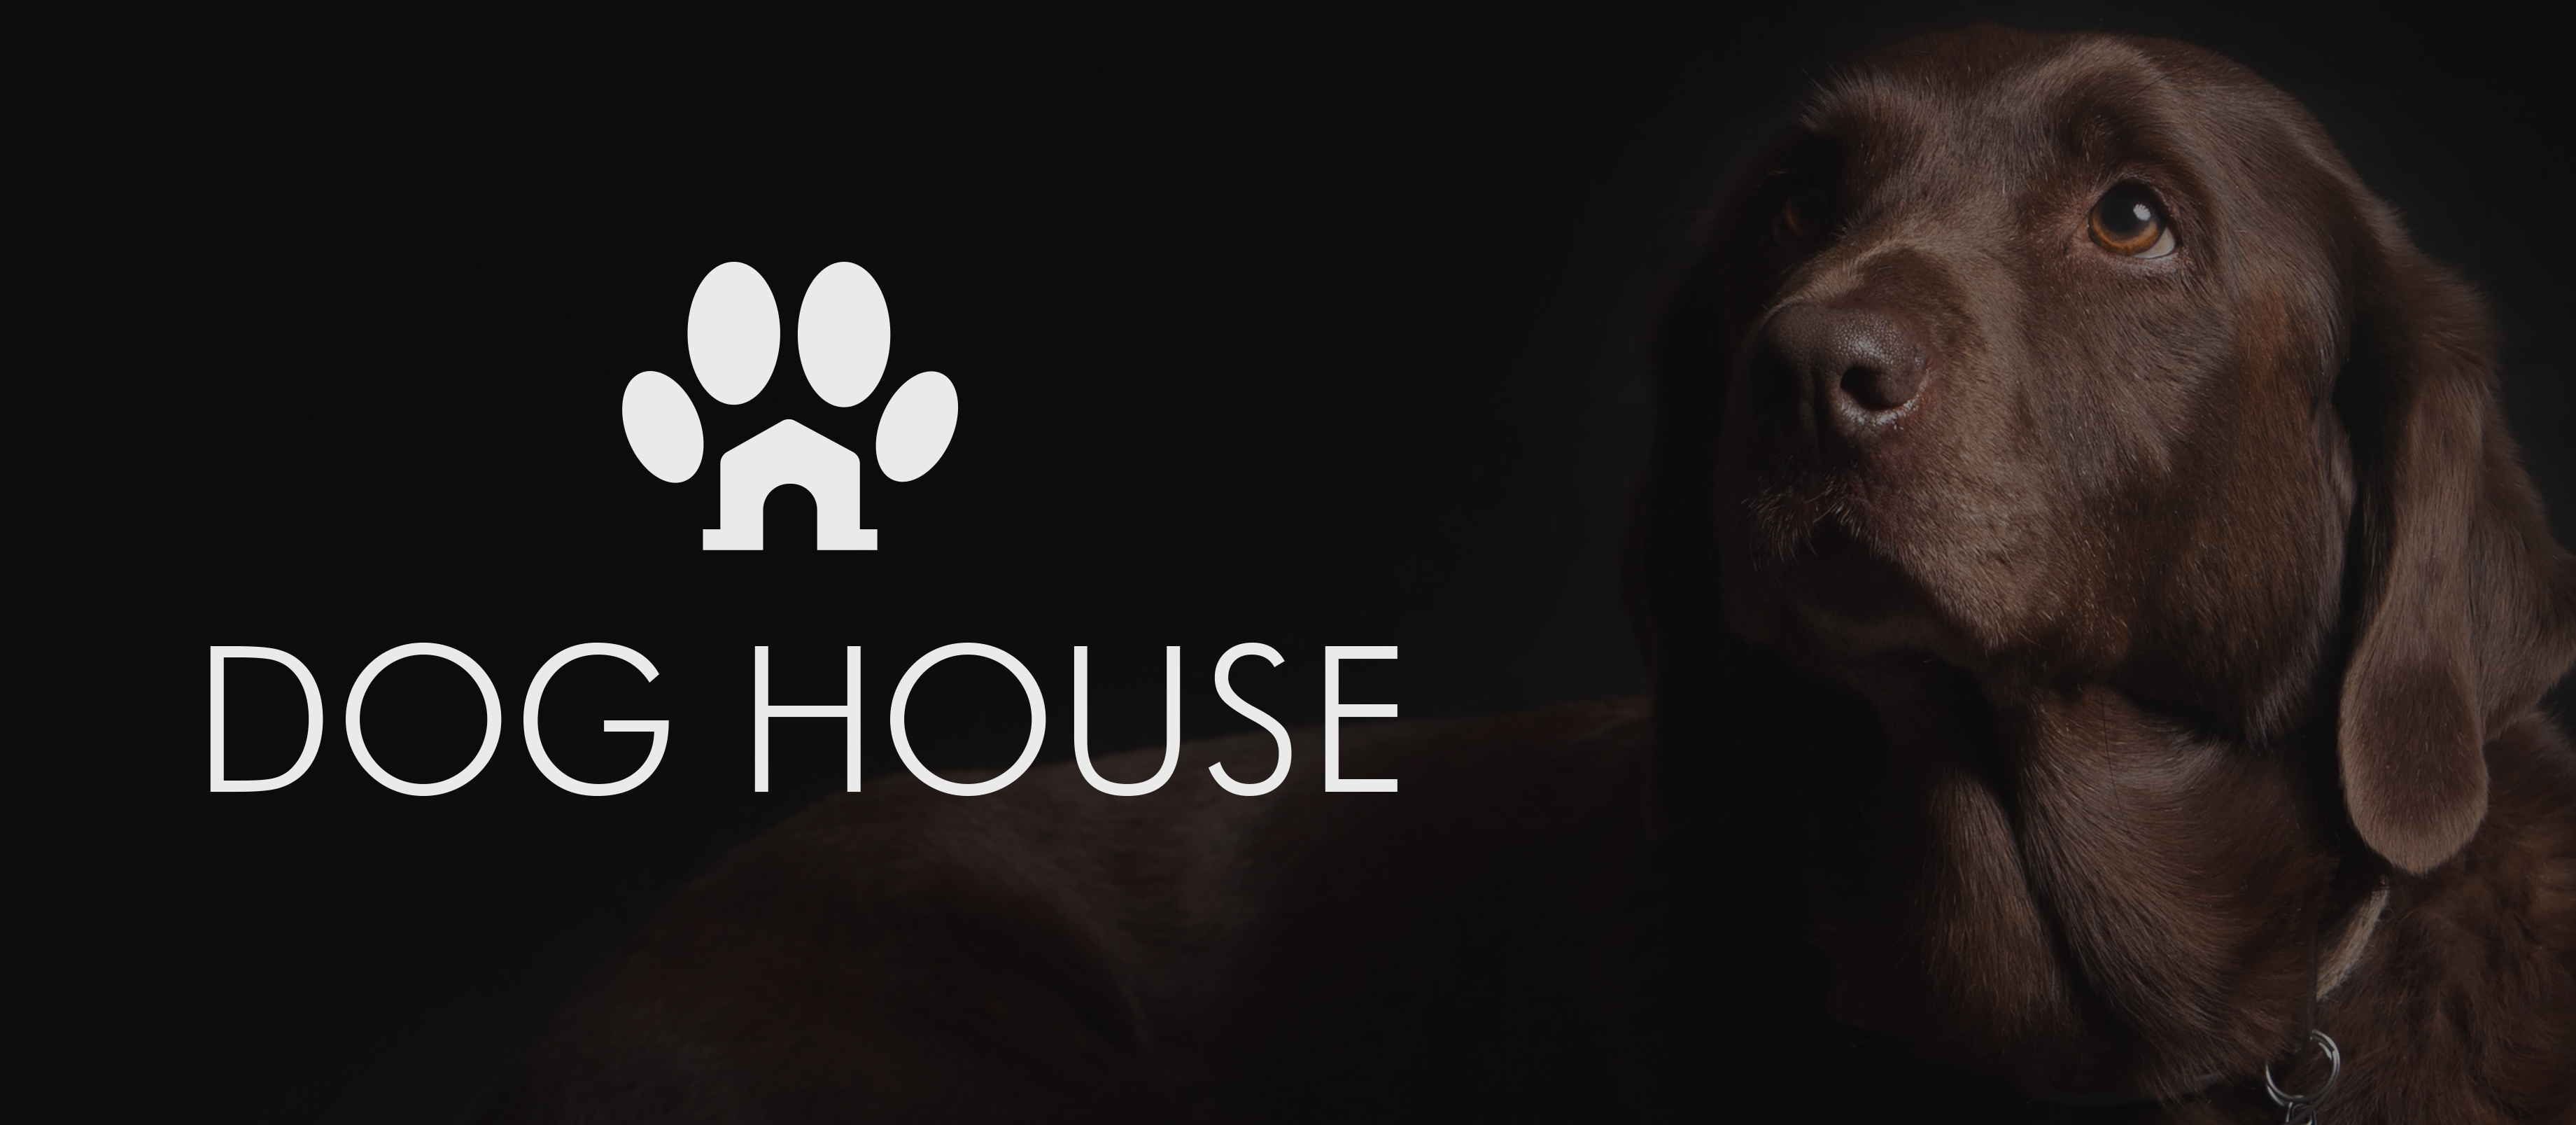 Dog house food packaging for dogs